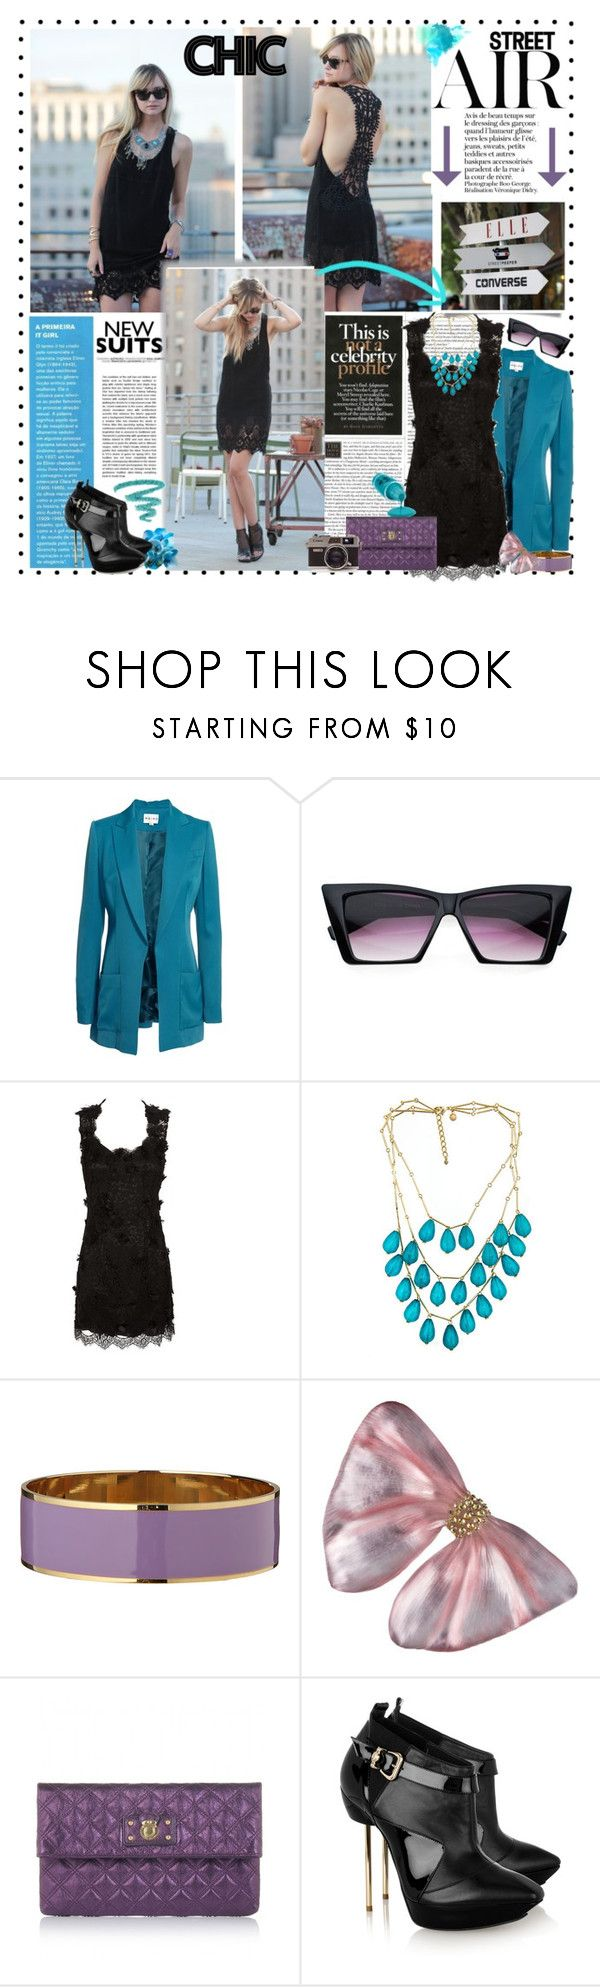 """Late Afternoon ;)"" by ellchy89 ❤ liked on Polyvore featuring Reiss, Pointer, Dolce&Gabbana, Roberta Chiarella, Marc Jacobs, Versace and Yves Saint Laurent"